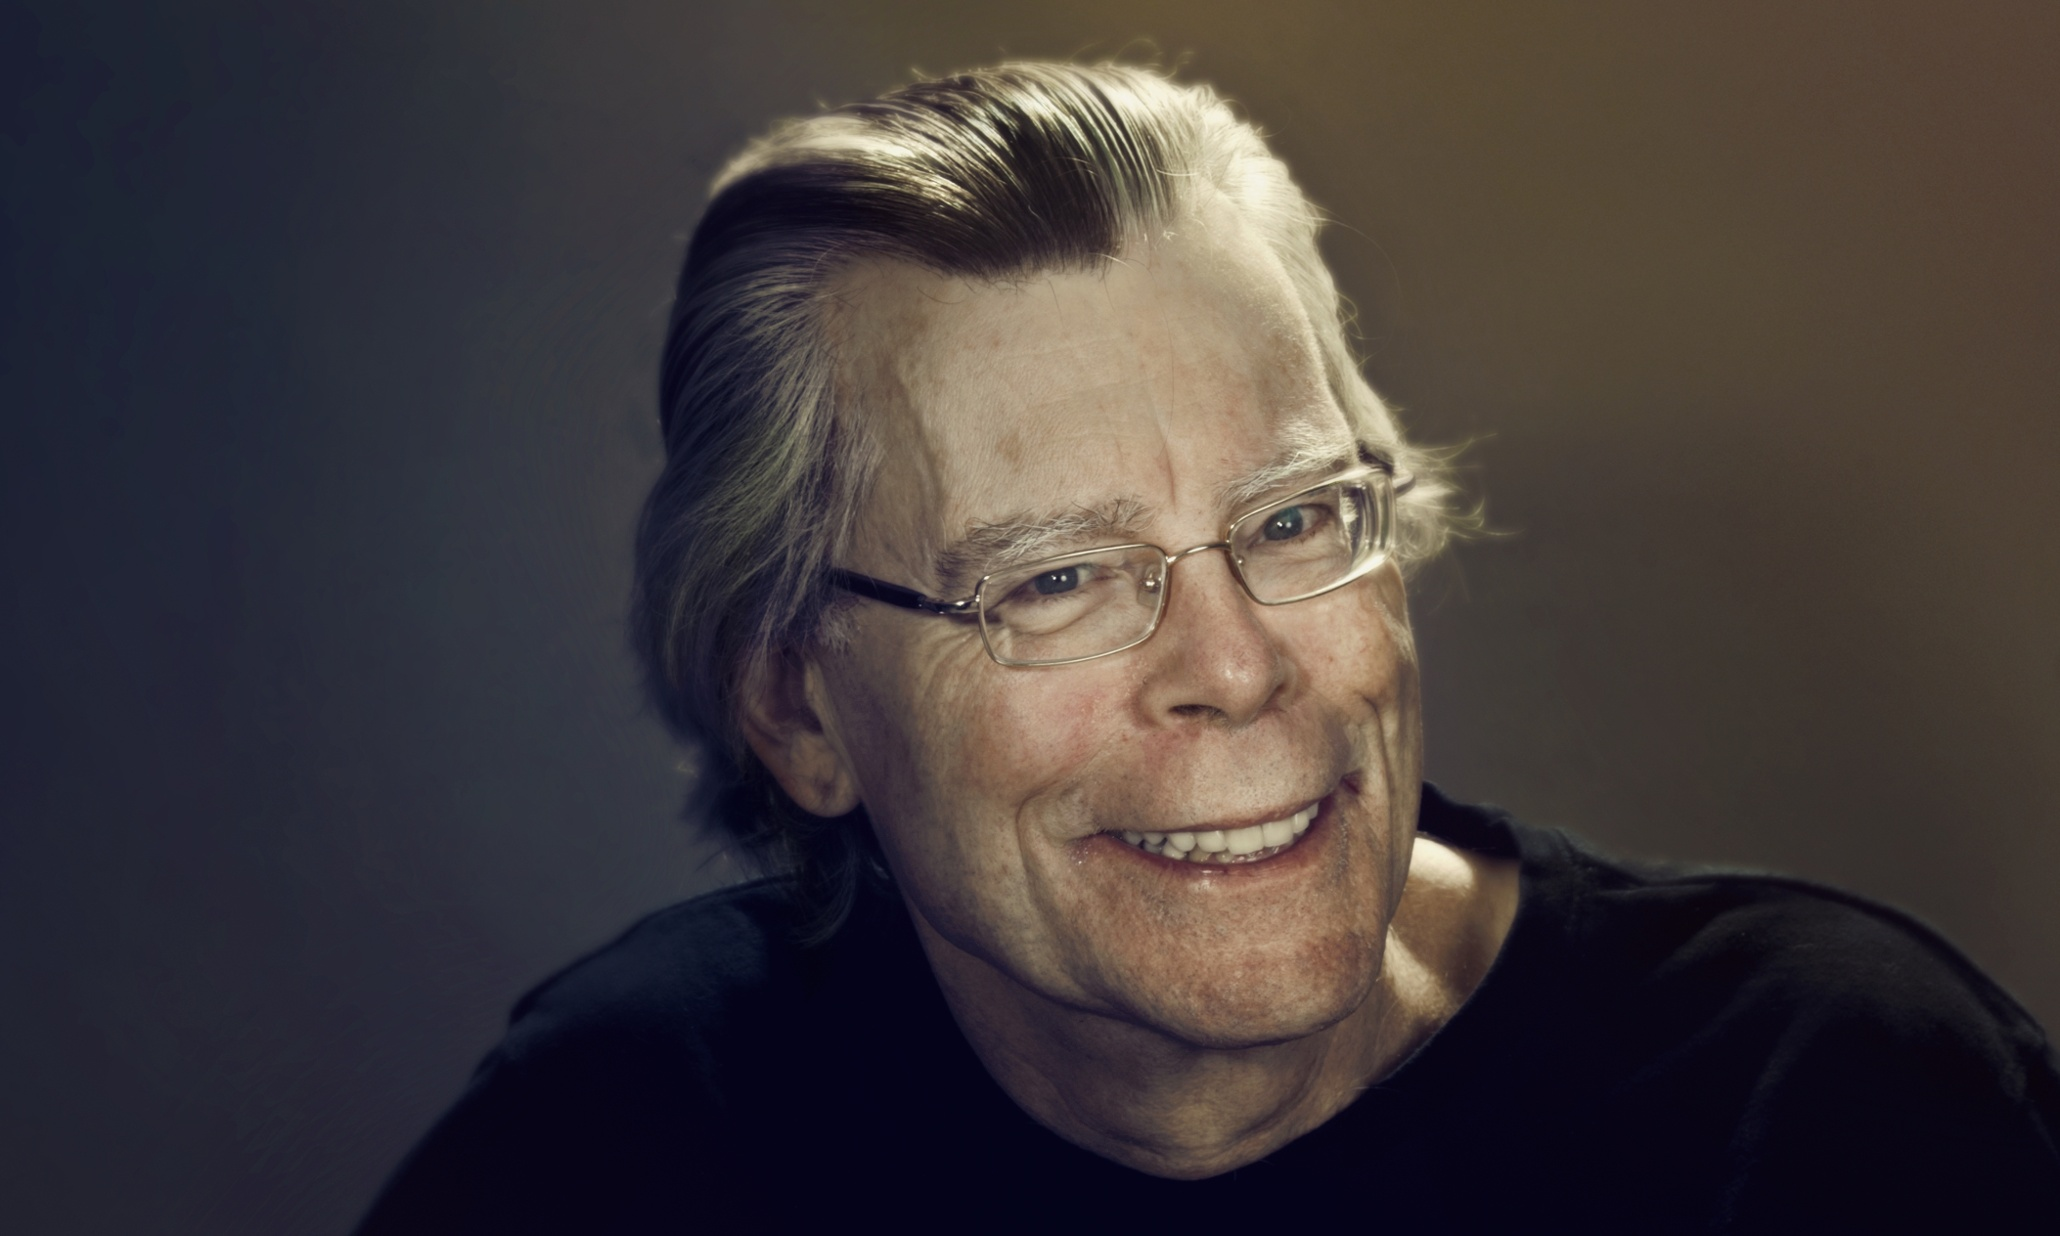 stephen king twitterstephen king books, stephen king it, stephen king книги, stephen king twitter, stephen king movies, stephen king biography, stephen king carrie, stephen king dark tower, stephen king wiki, stephen king quotes, stephen king фильмы, stephen king on writing, stephen king the stand, stephen king christine, stephen king pet sematary, stephen king read online, stephen king revival, stephen king films, stephen king joyland, stephen king misery pdf